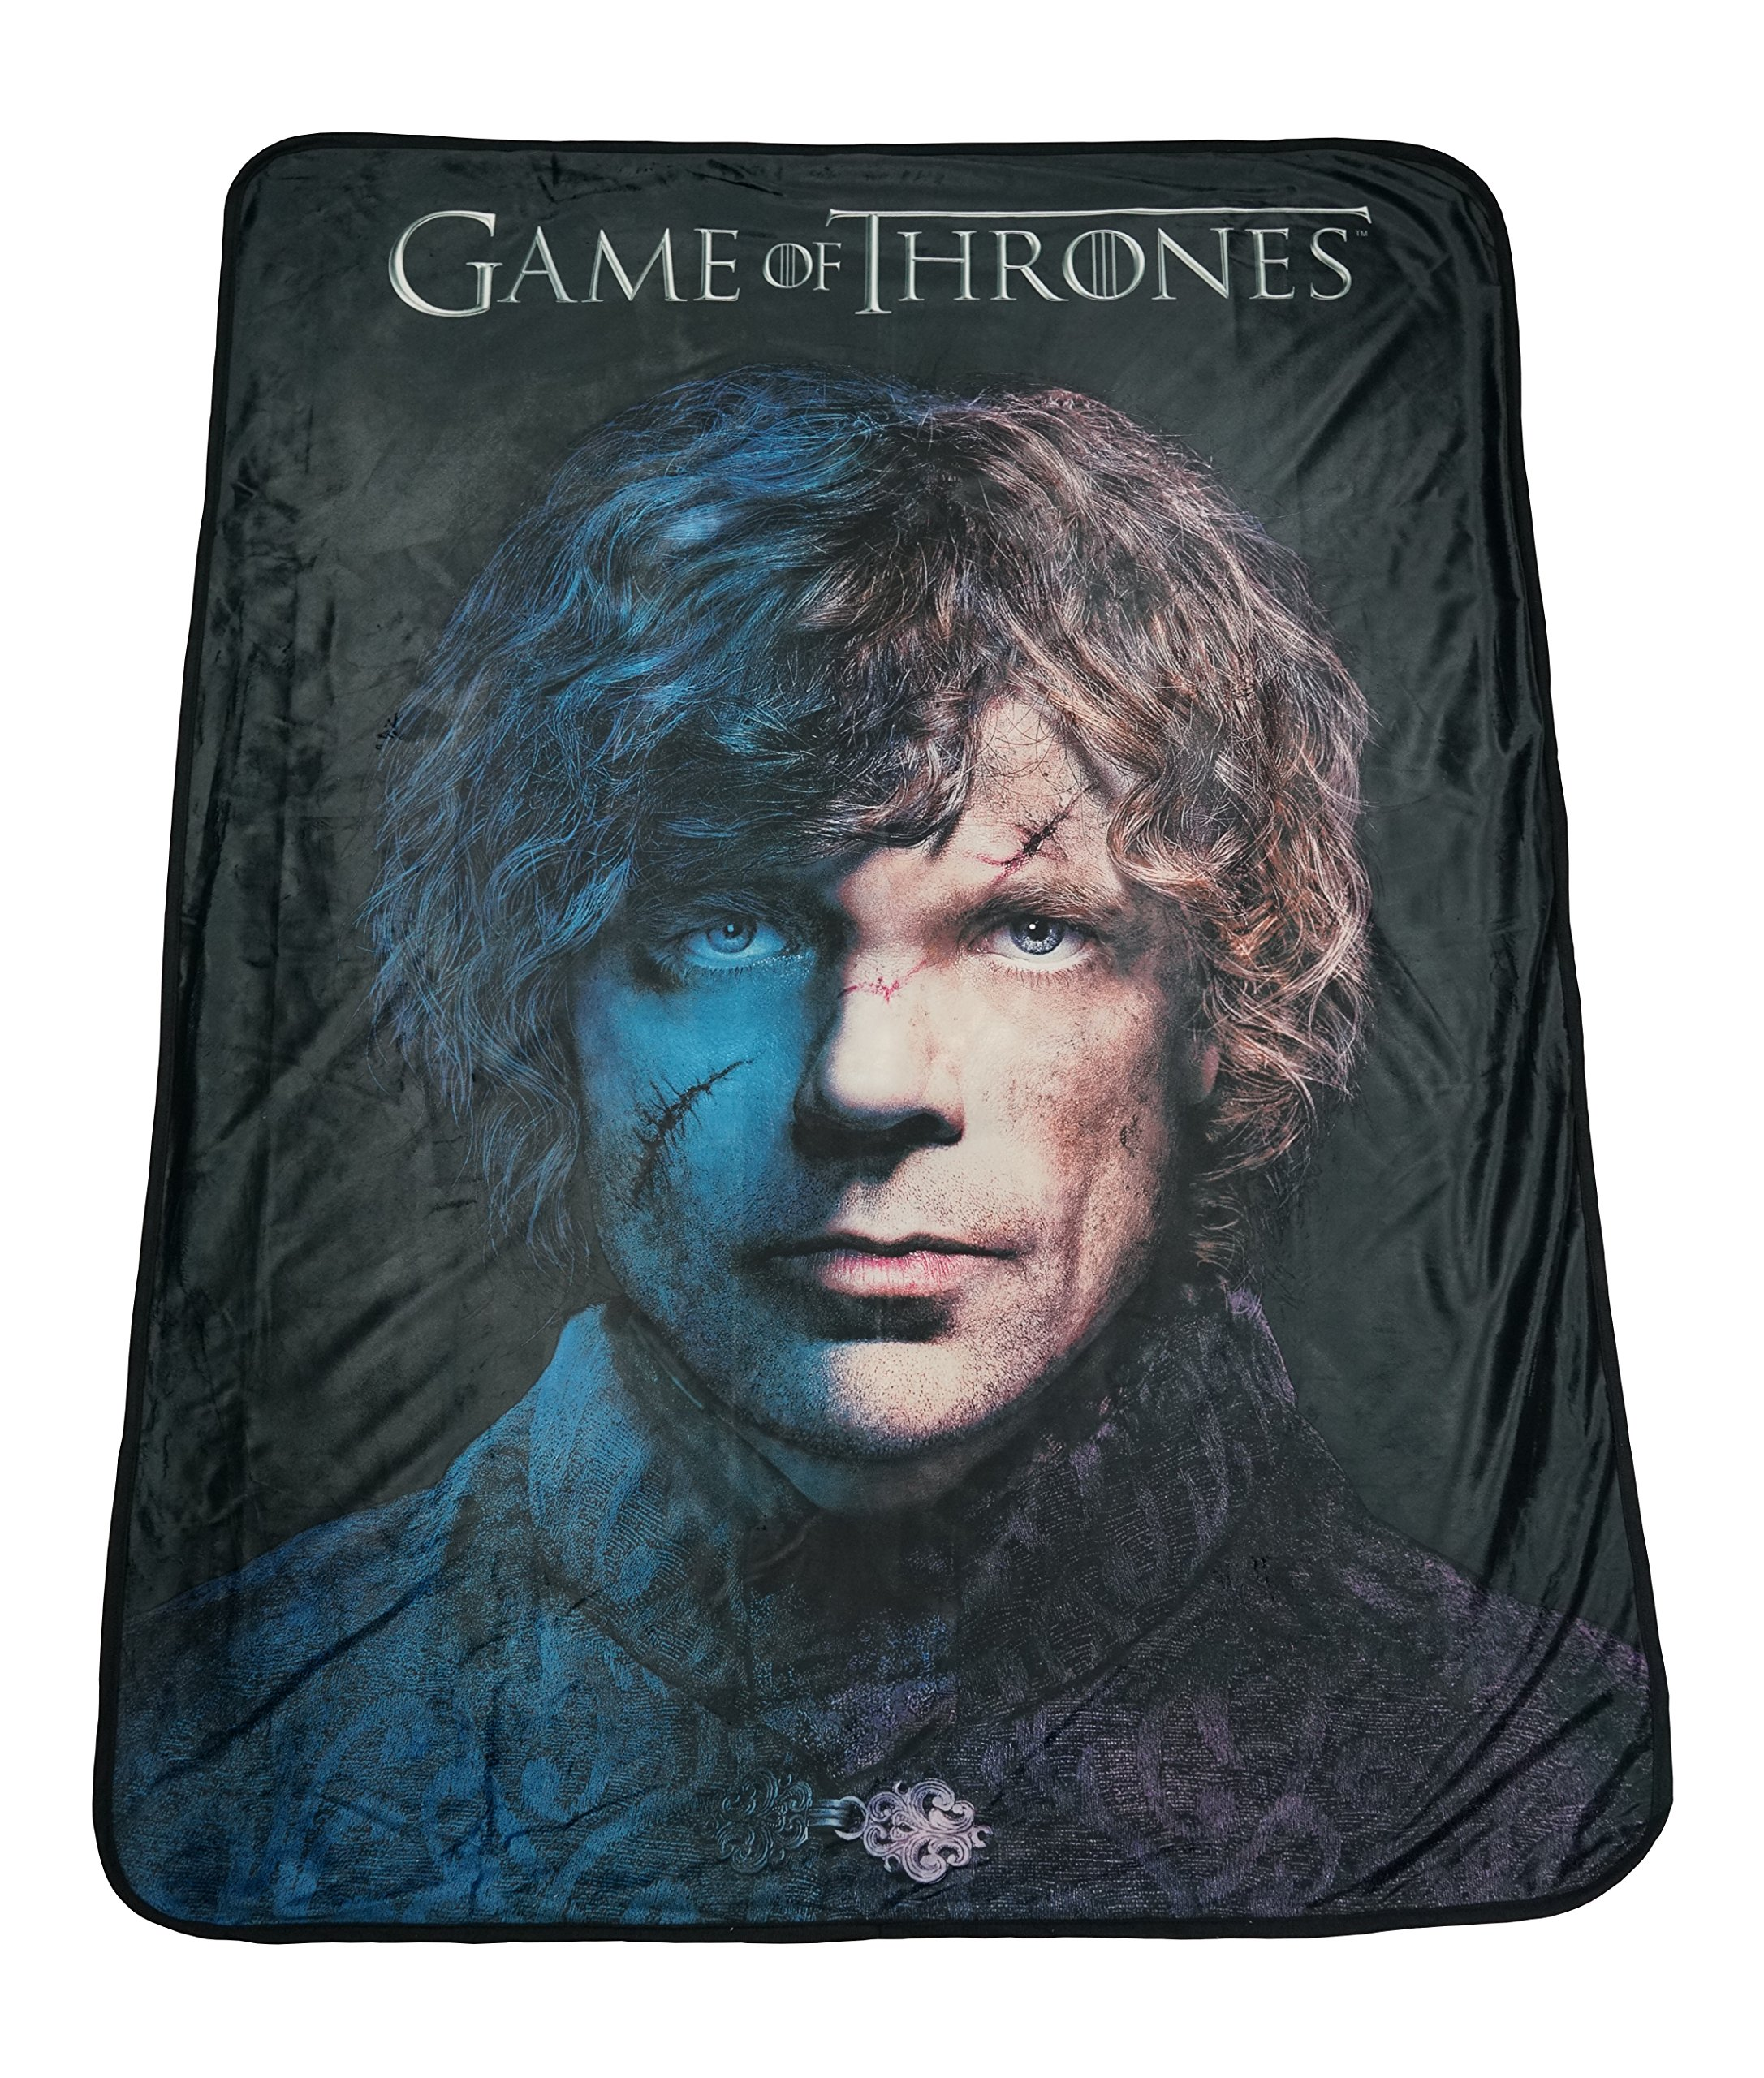 Game of Thrones 46'' X 60'' Tryion Fleece Throw Blanket